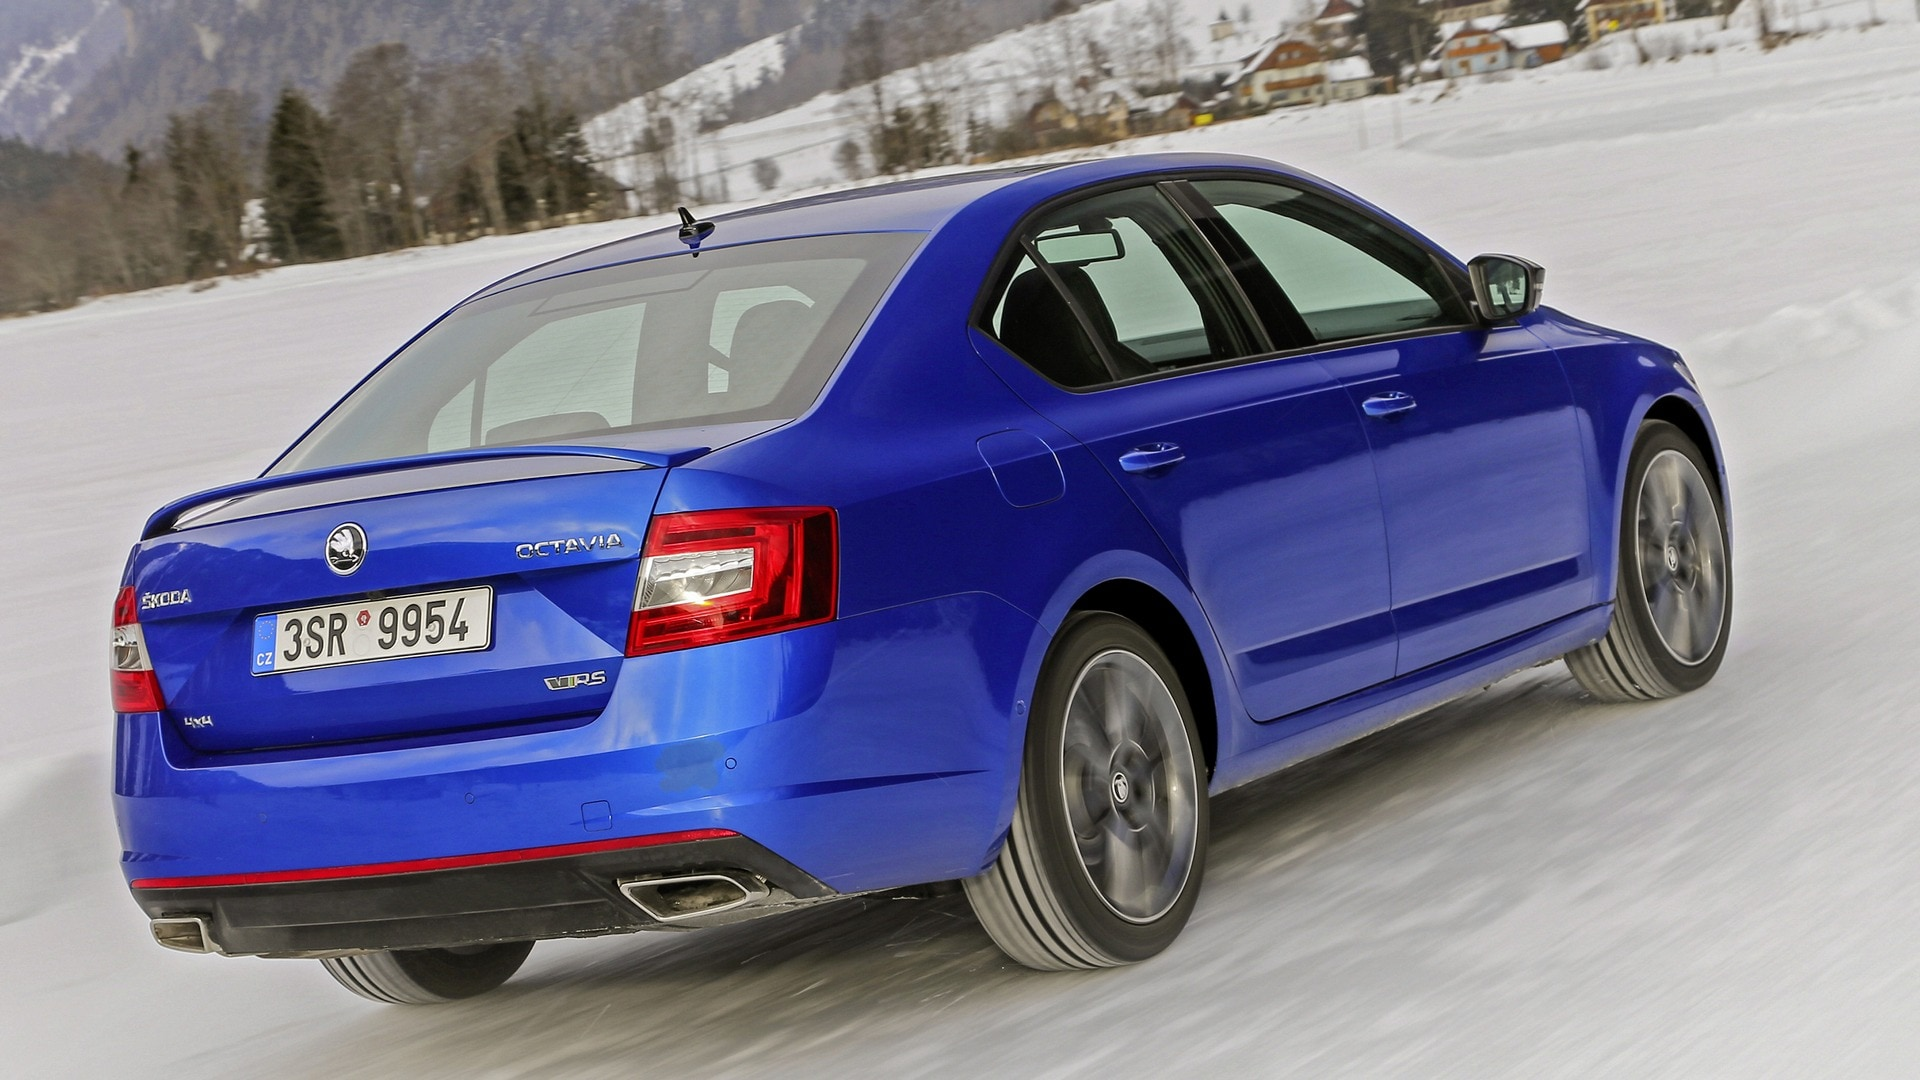 The rear of the Skoda Octavia RS exudes power, without losing on elegance.